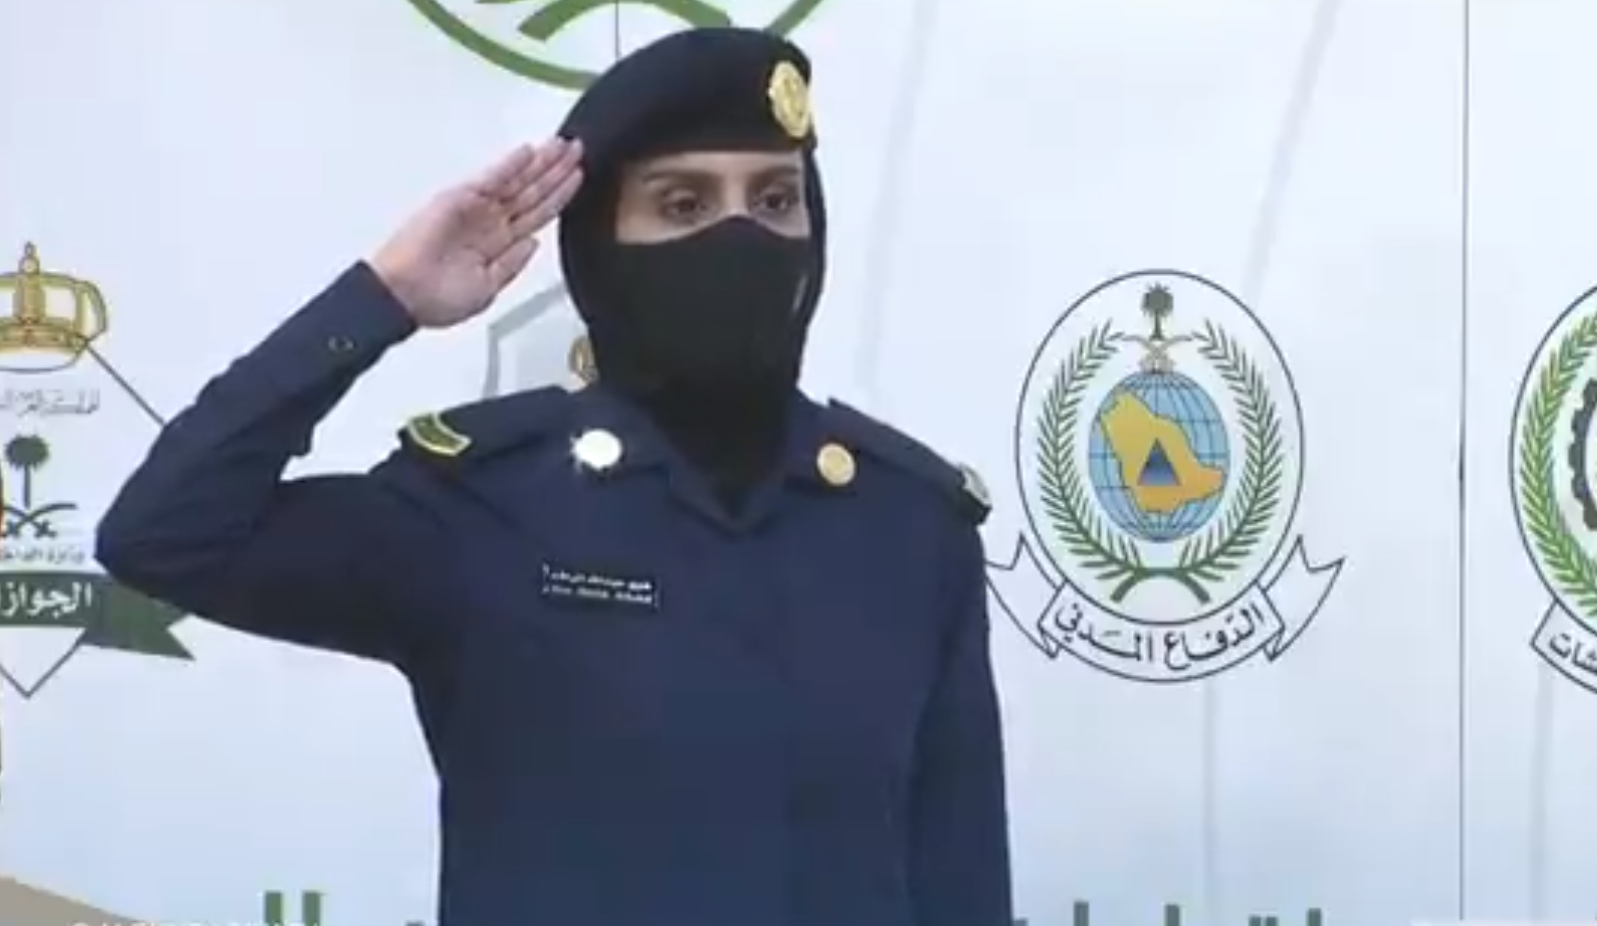 Saudi Arabian soldier Abeer al-Rashed, conducting the Kingdom's first-ever female-led security forces briefing for Hajj on Tuesday, 14 July 2021. (Screengrab via Twitter)